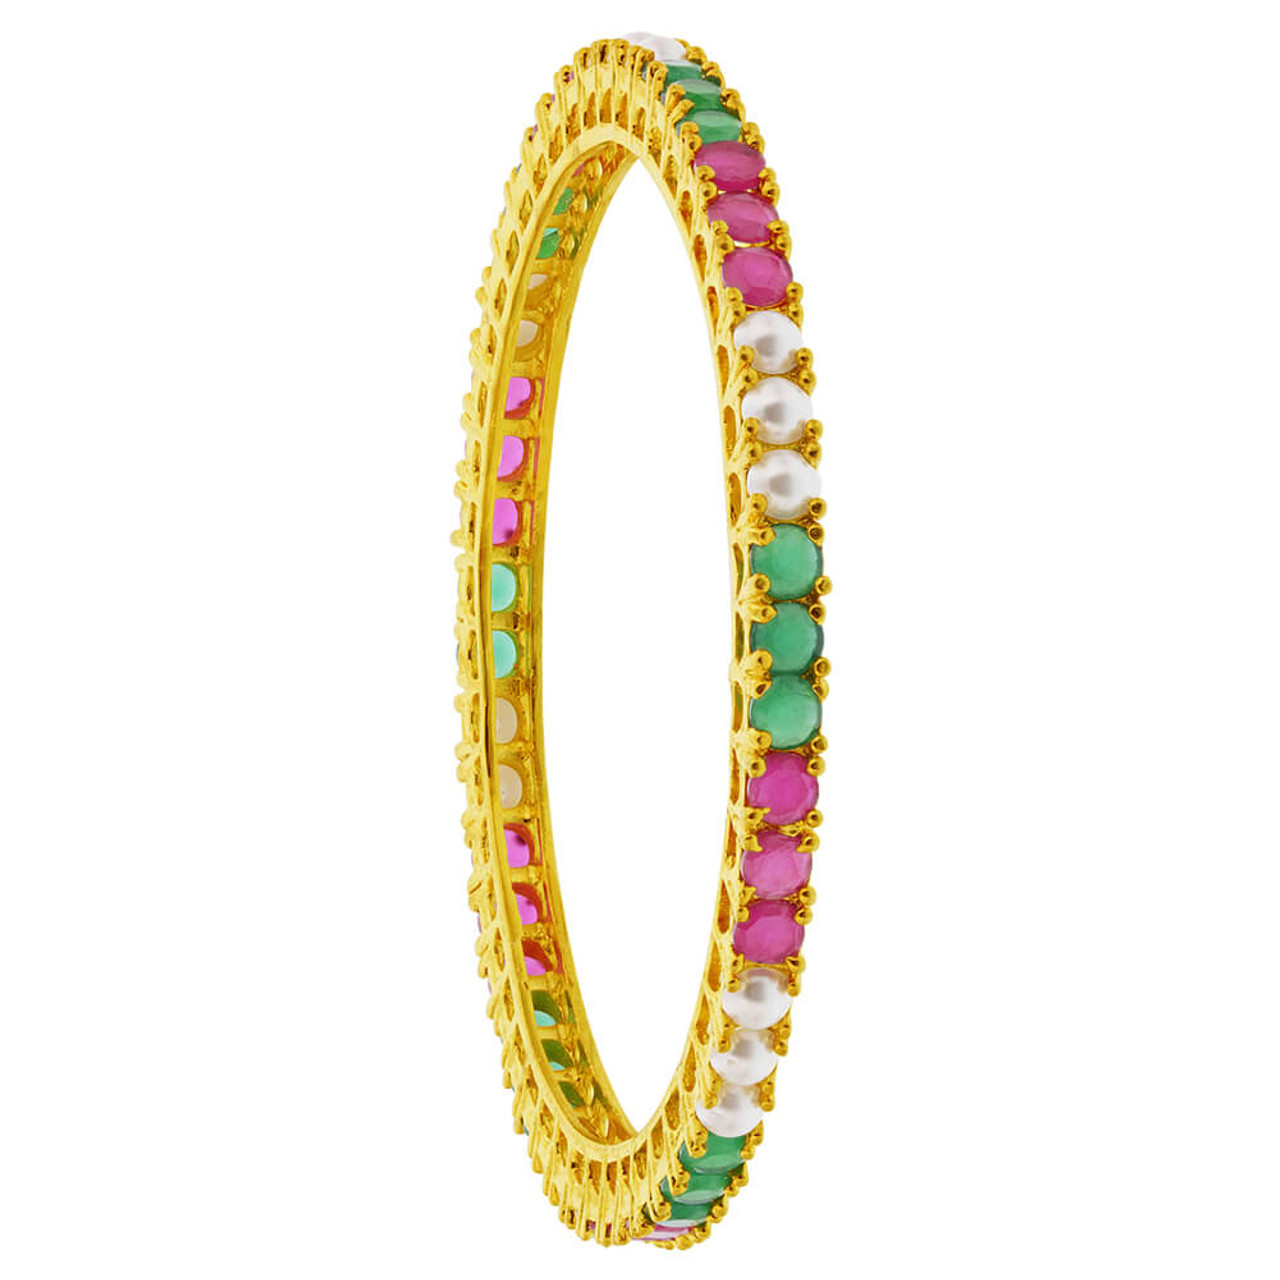 Ruby and Emerald Bangle Bracelets